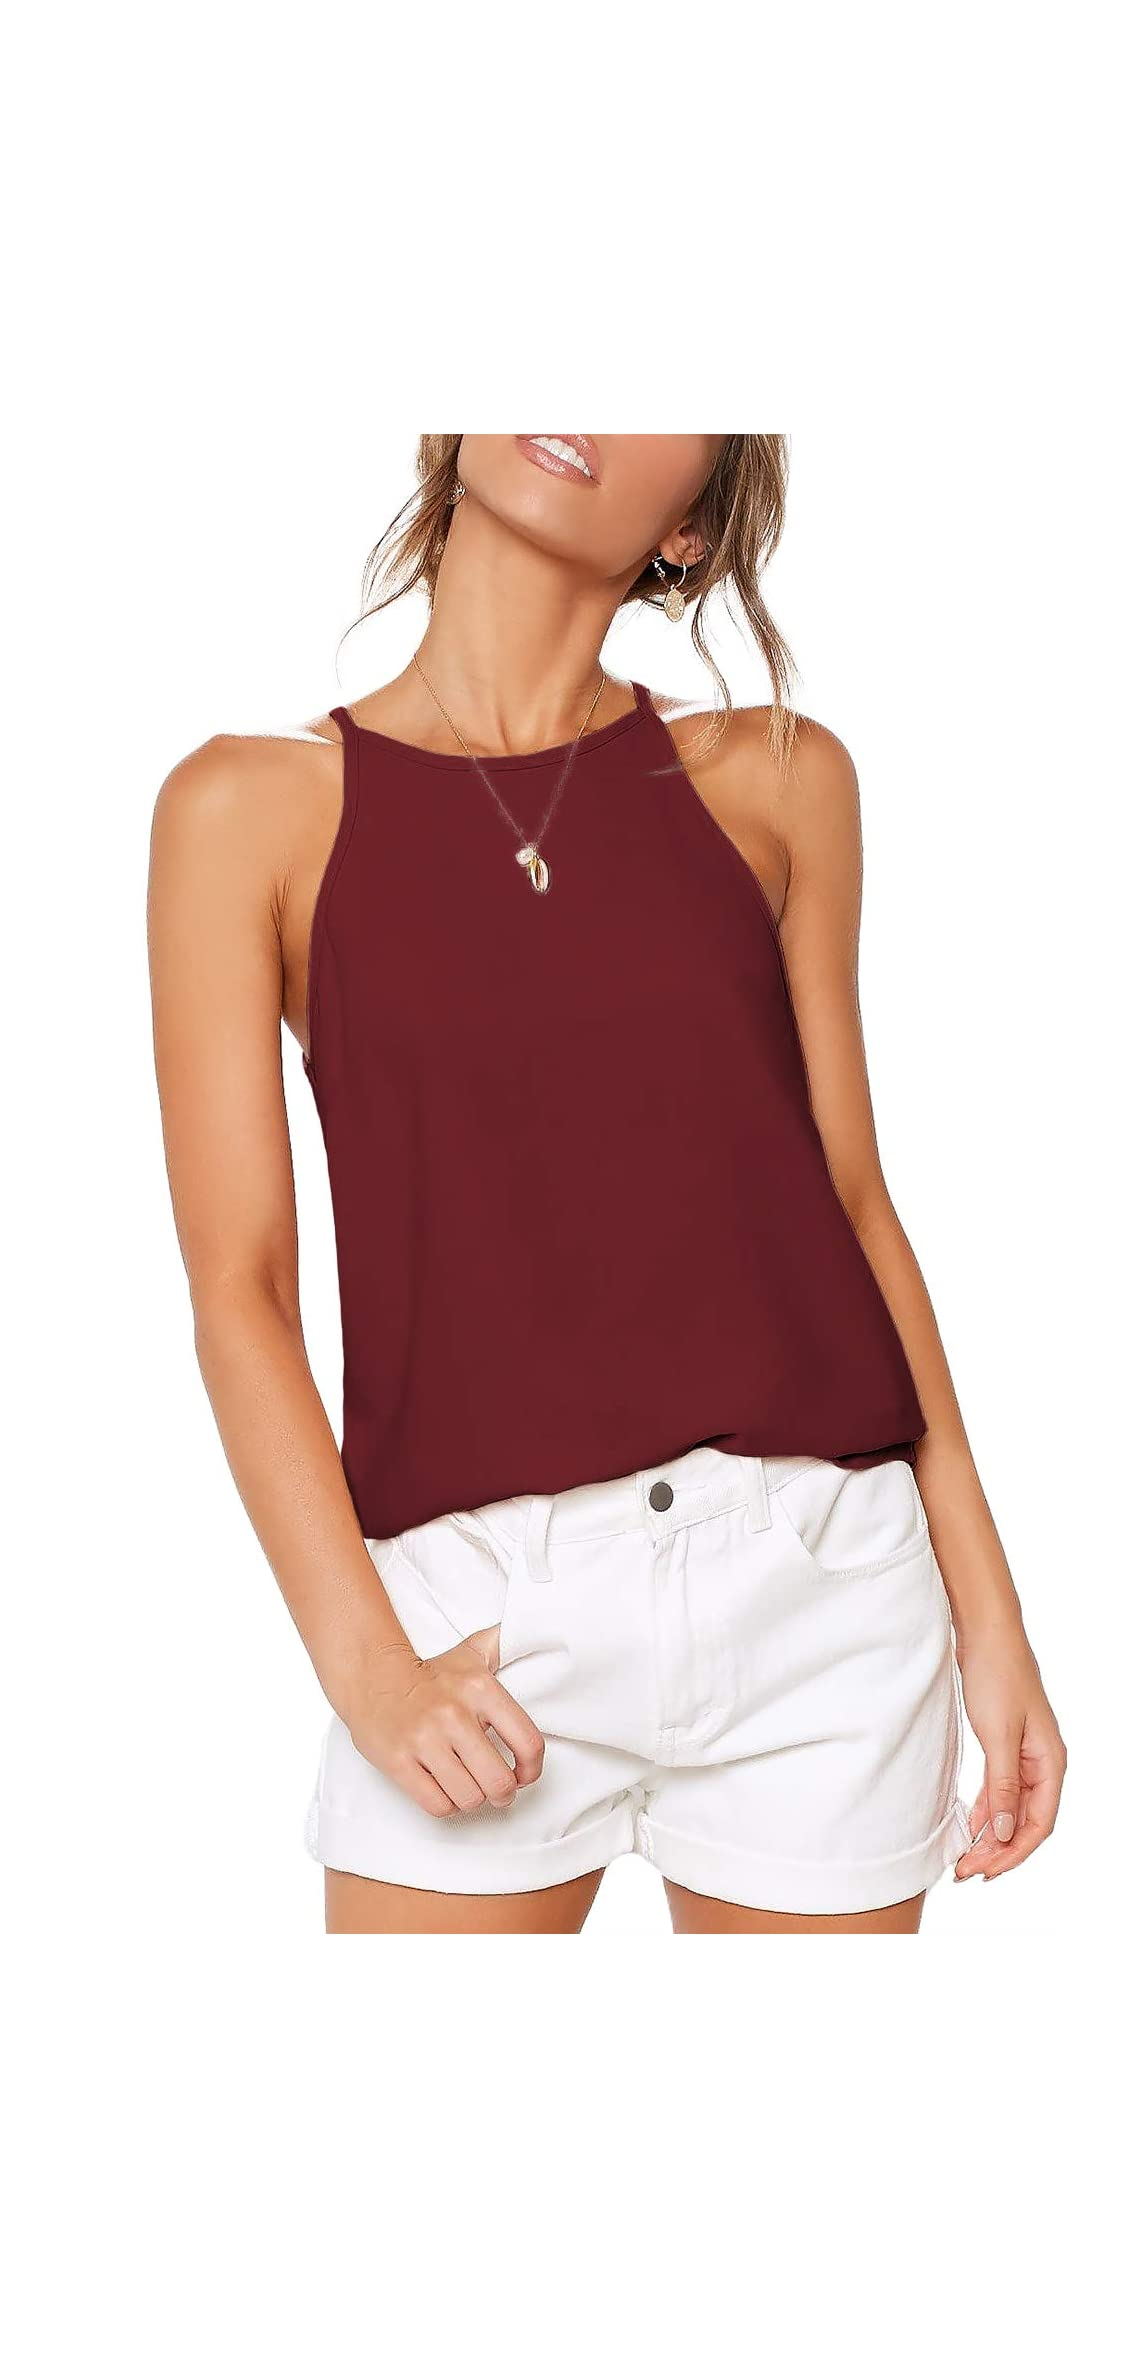 Womens Shirts Halter Neck Racerback Tank Top Summer Casual